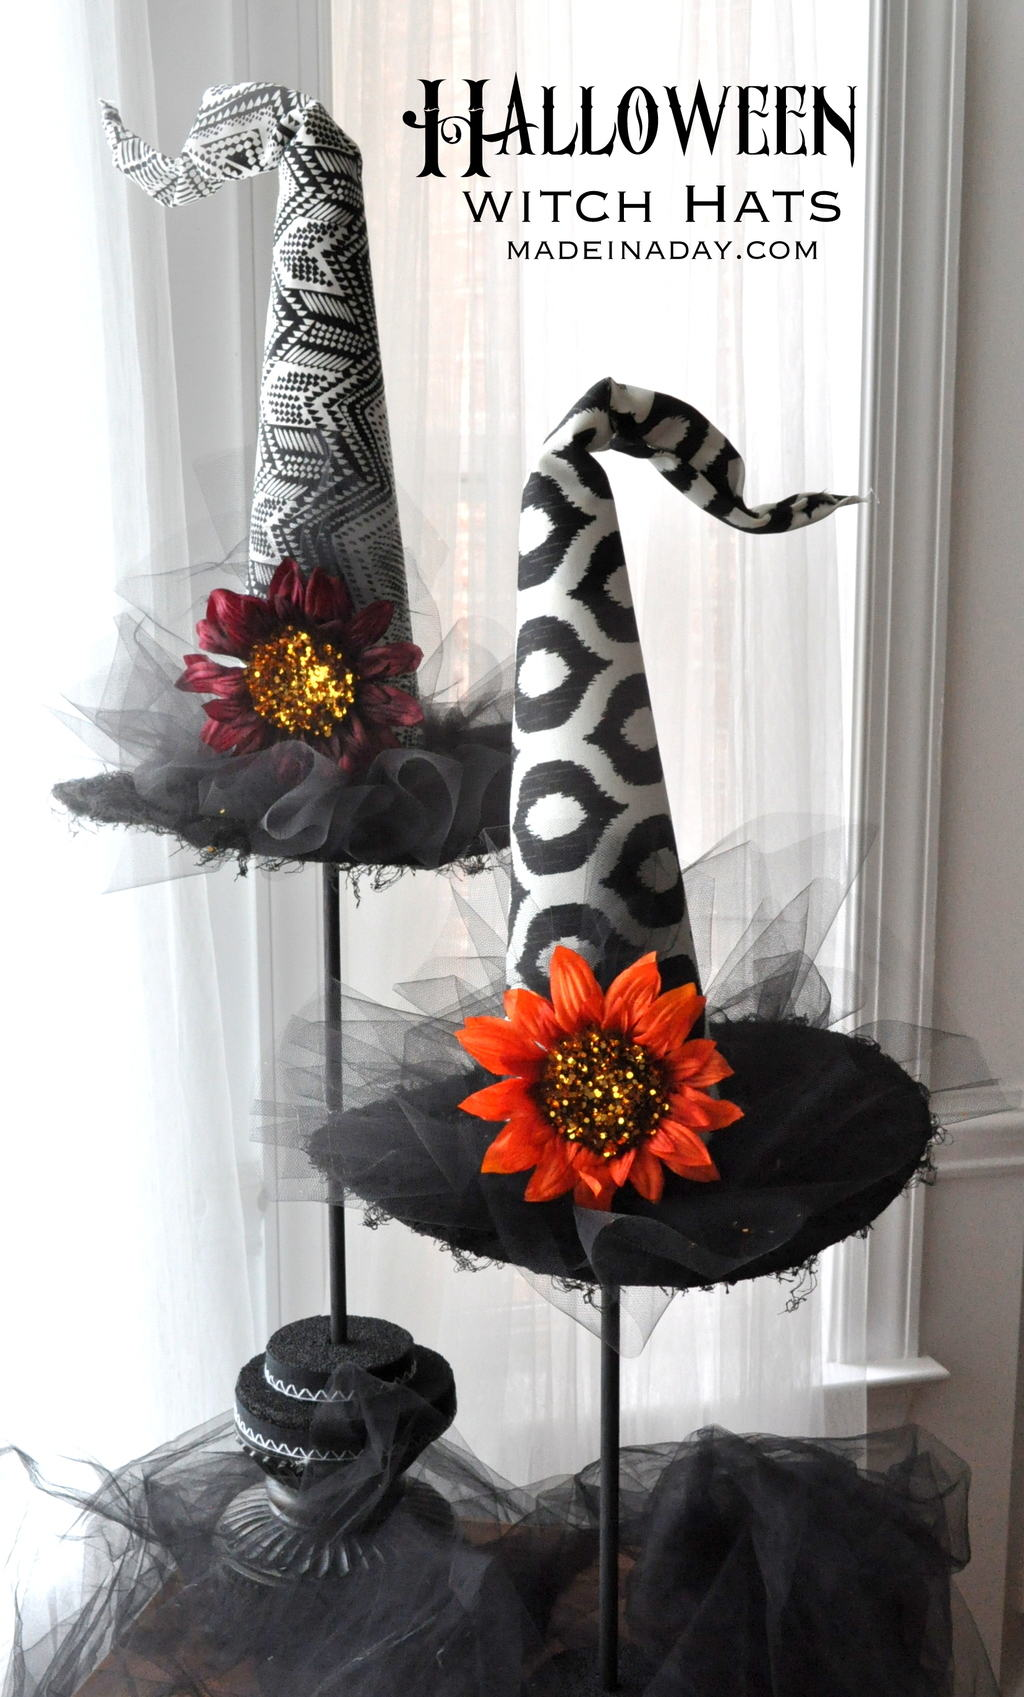 decorative witch hat halloween black white party props madeinadaycom - Halloween Witch Decoration